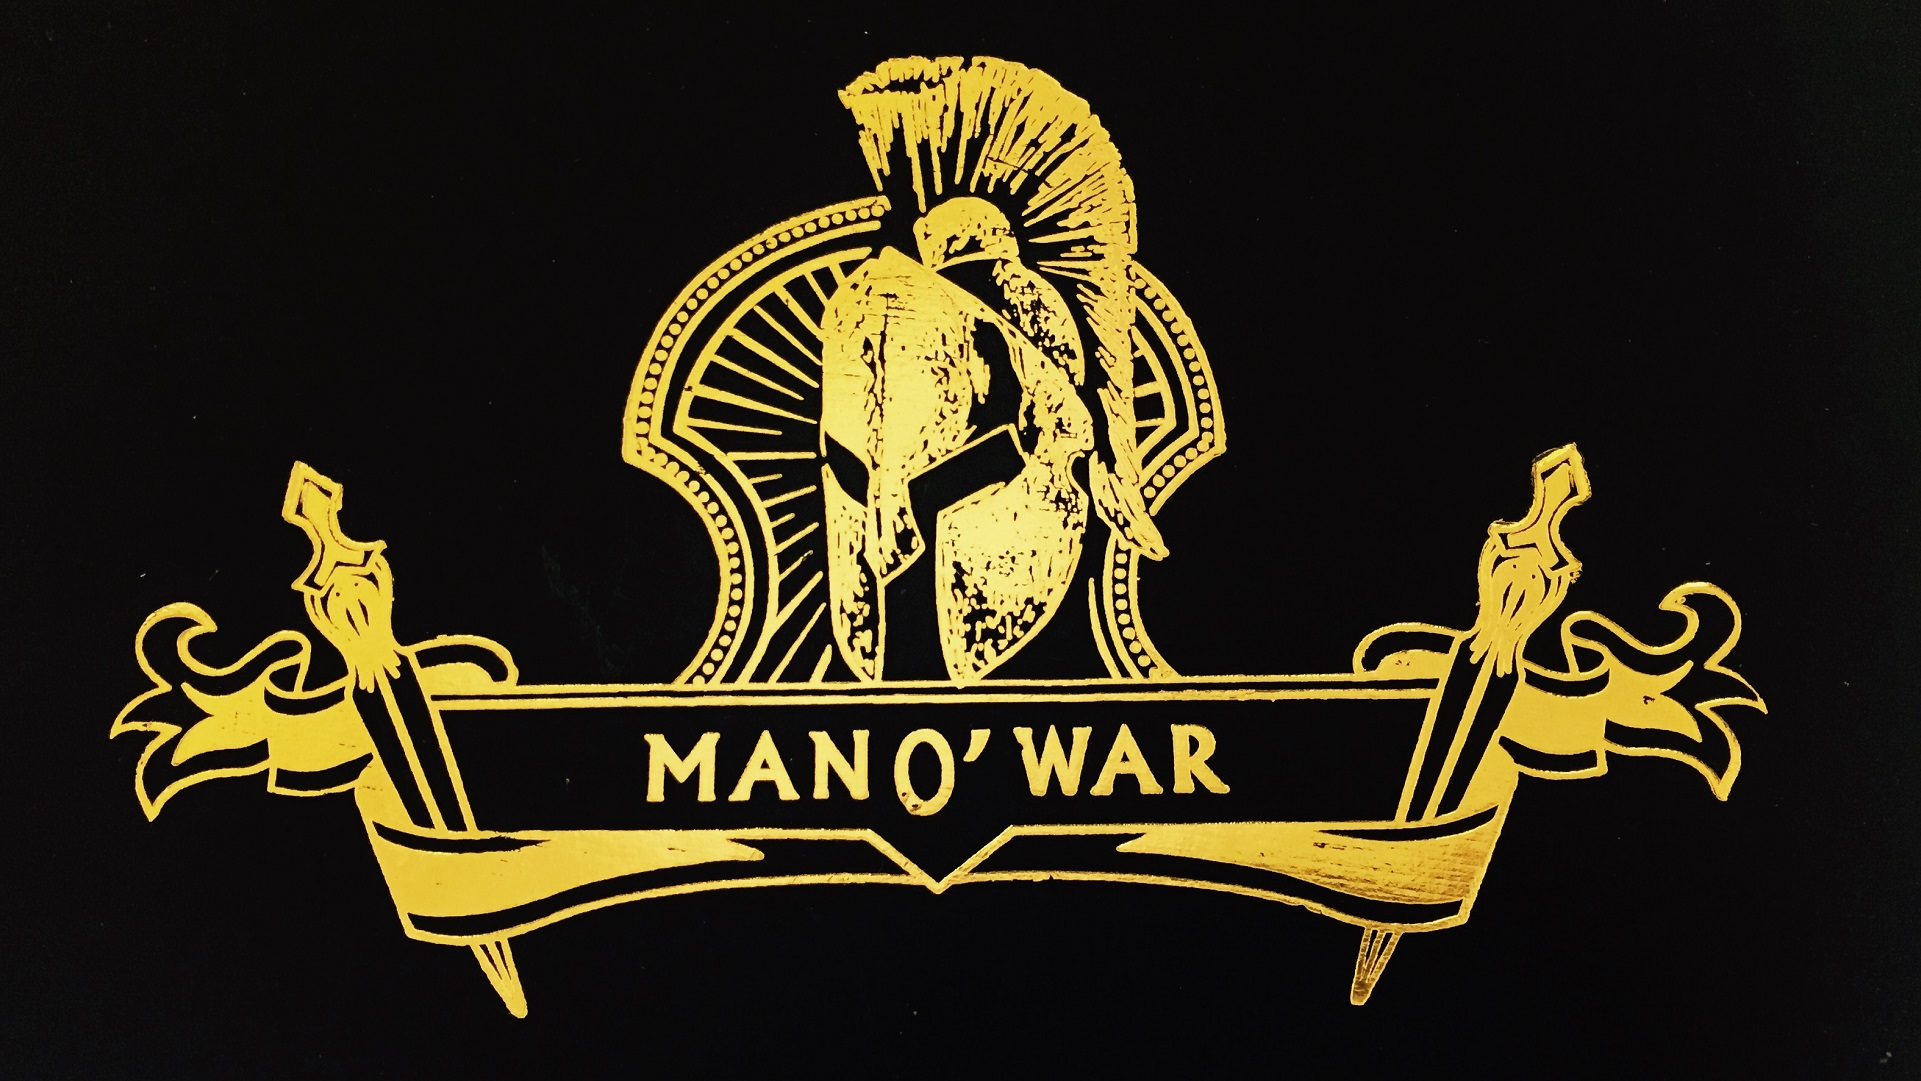 man o war cigars box image